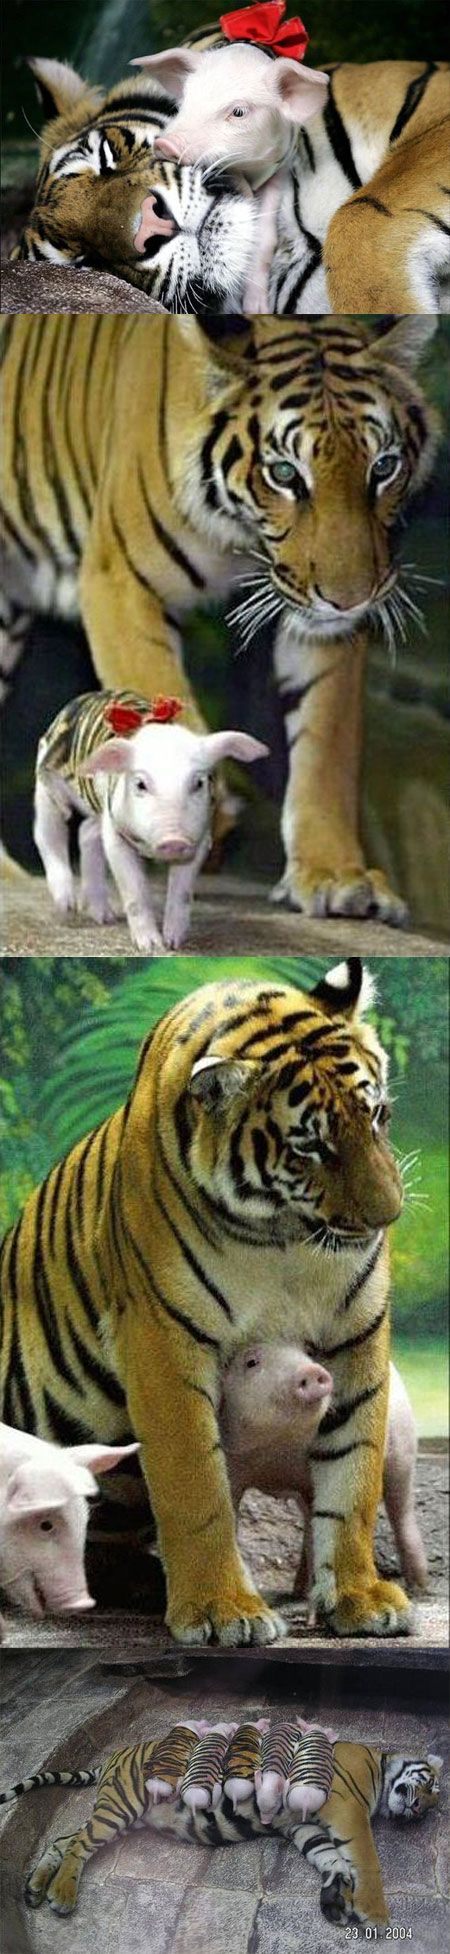 A tiger mother lost her cubs from premature labour. Shortly after she became depressed and her health declined, and she was diagnosed with depression. So they wrapped up piglets in tiger cloth, and gave them to the tiger. The tiger now loves these pigs and treats them like her babies.